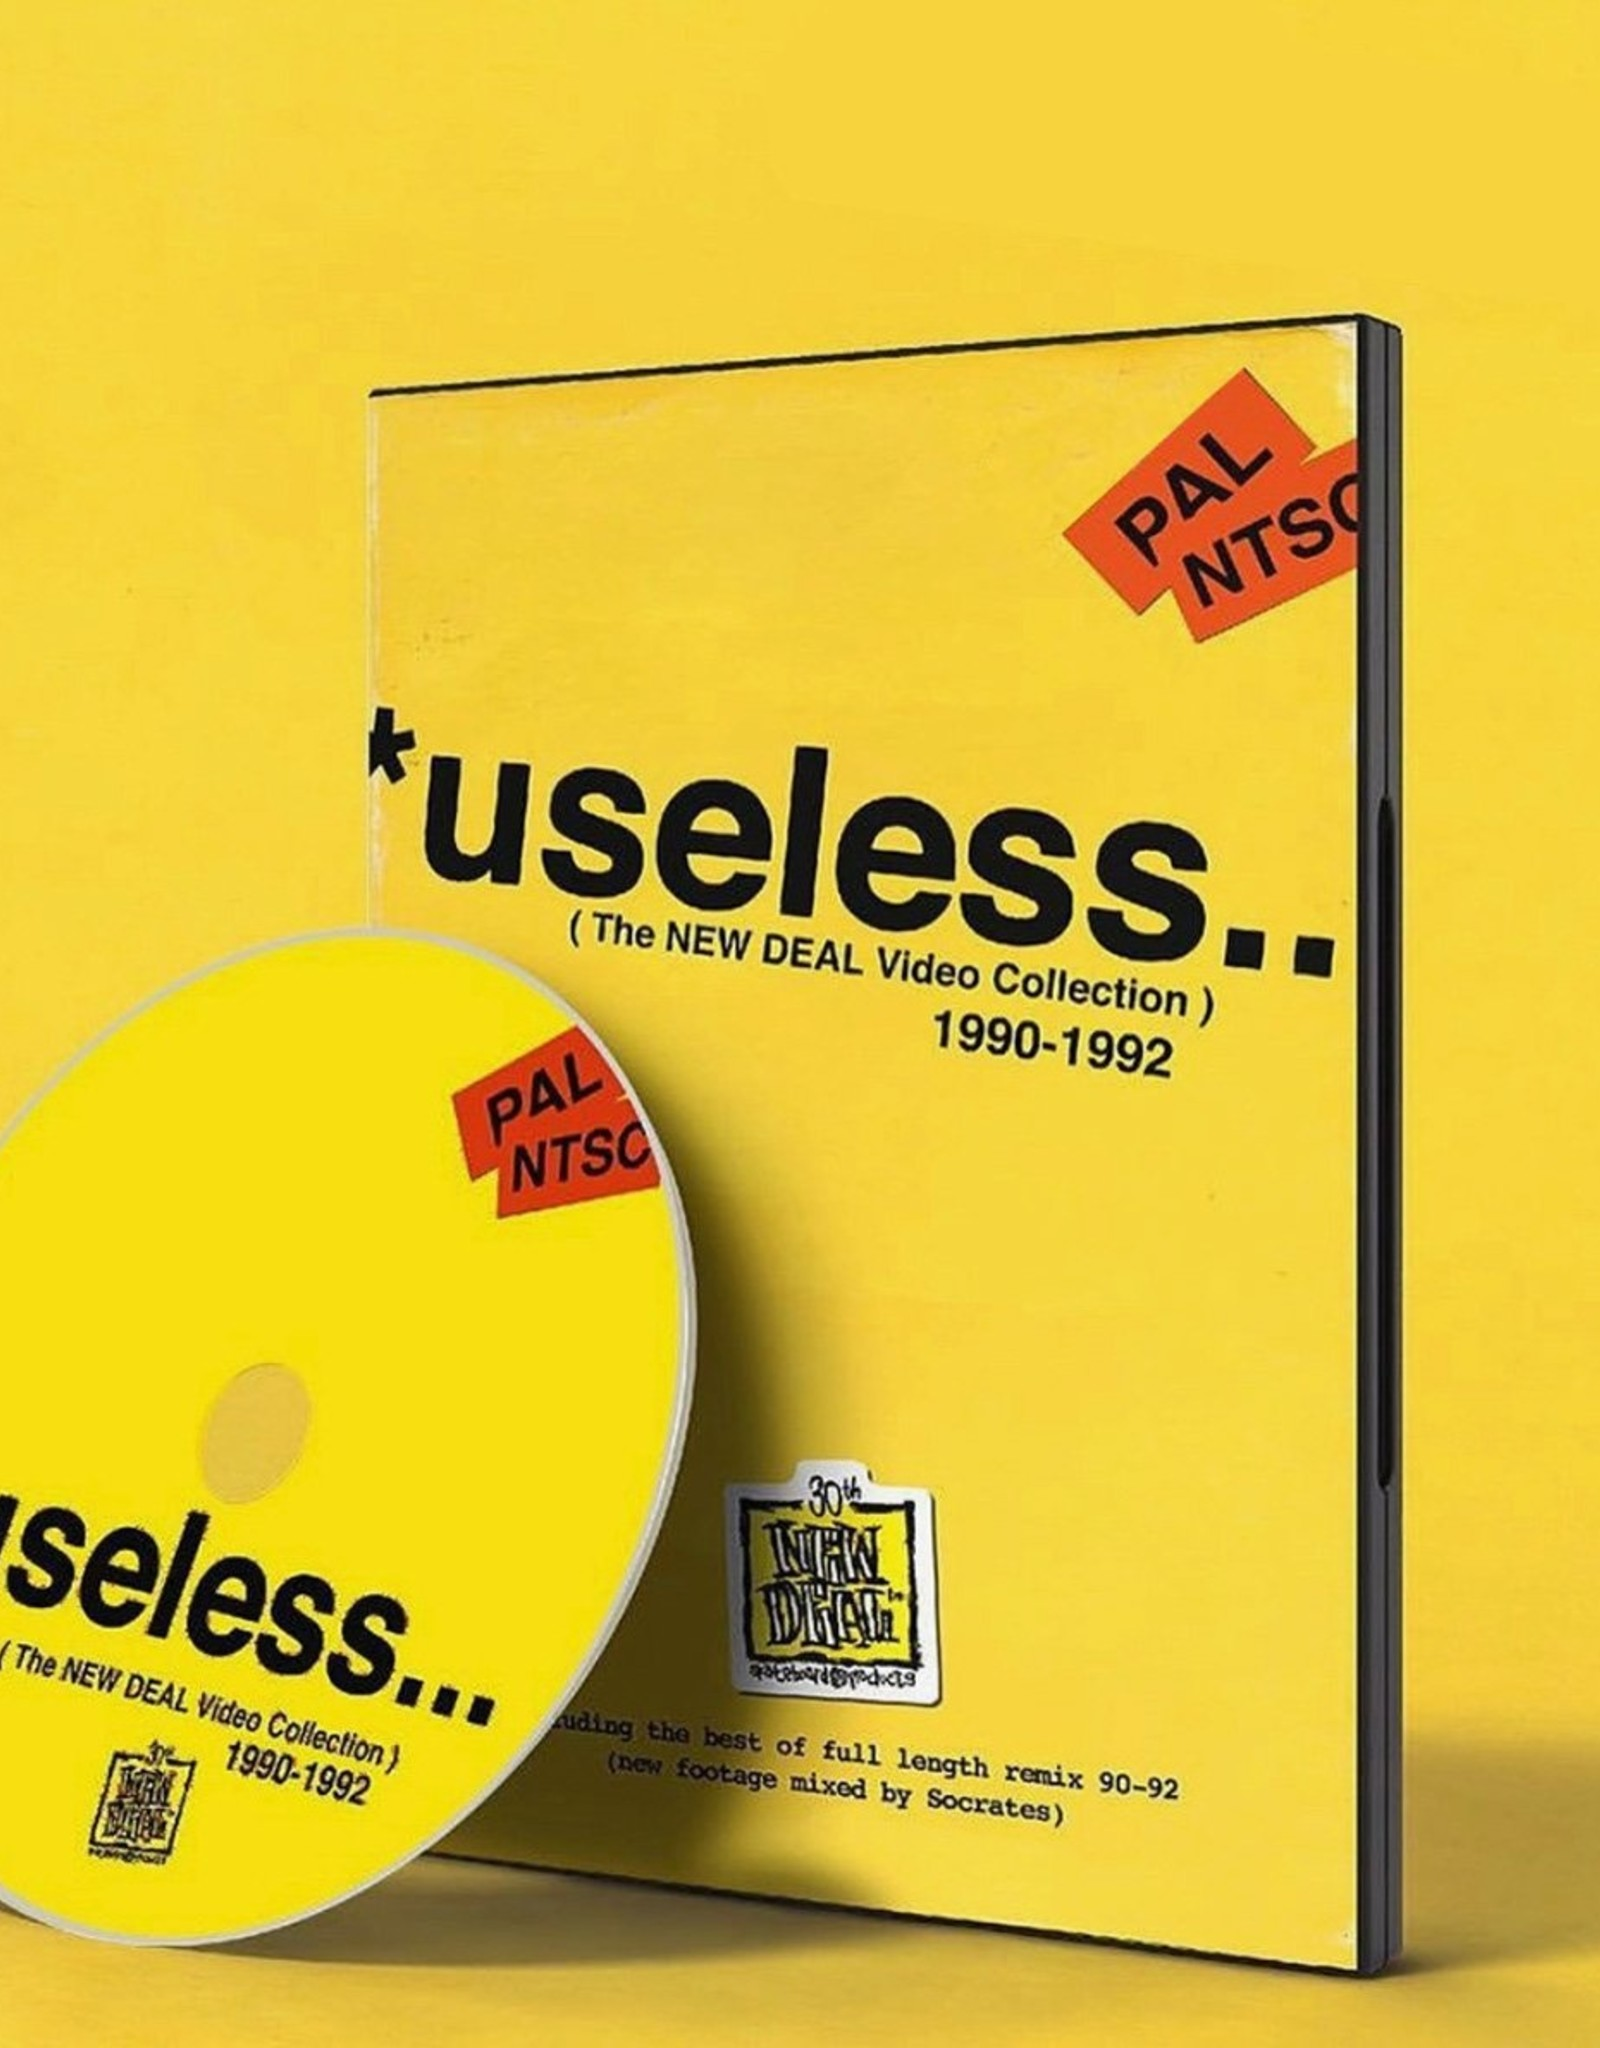 THE NEW DEAL THE NEW DEAL USELESS VIDEO COLLECTION DVD